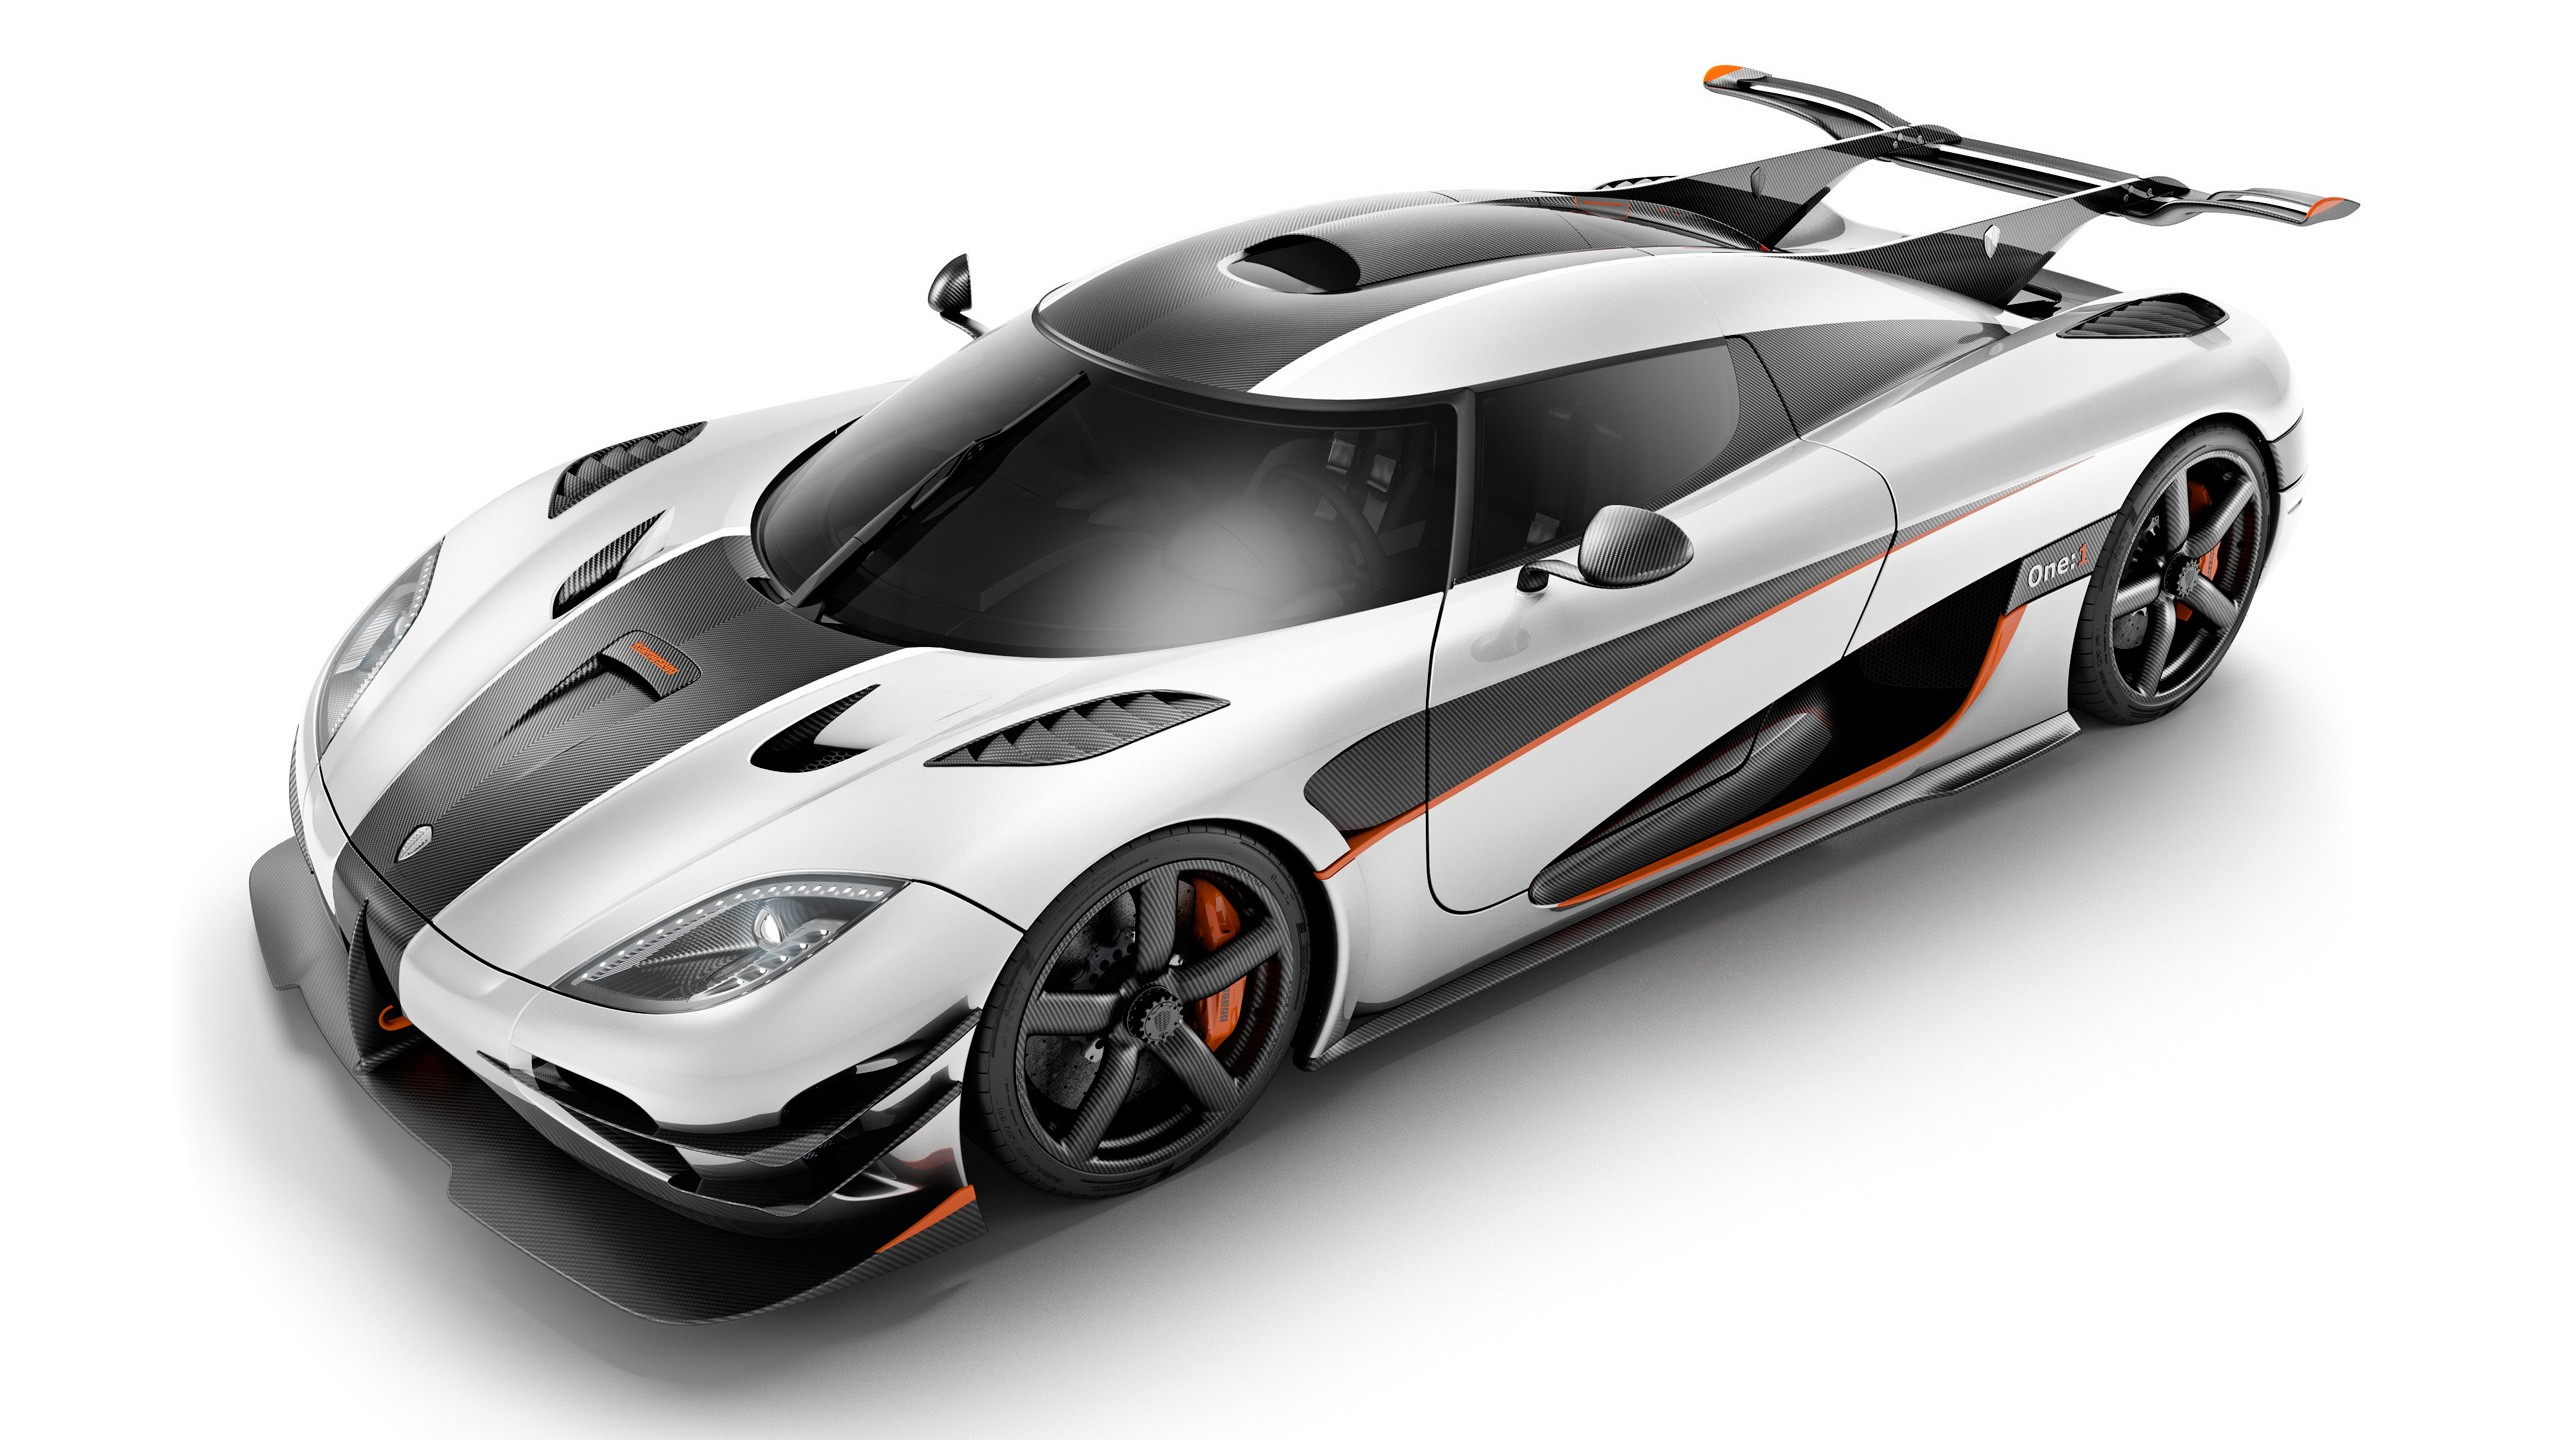 Chevrolet Latest Models >> 2014 Koenigsegg Agera One 1 Wallpaper | HD Car Wallpapers | ID #4184